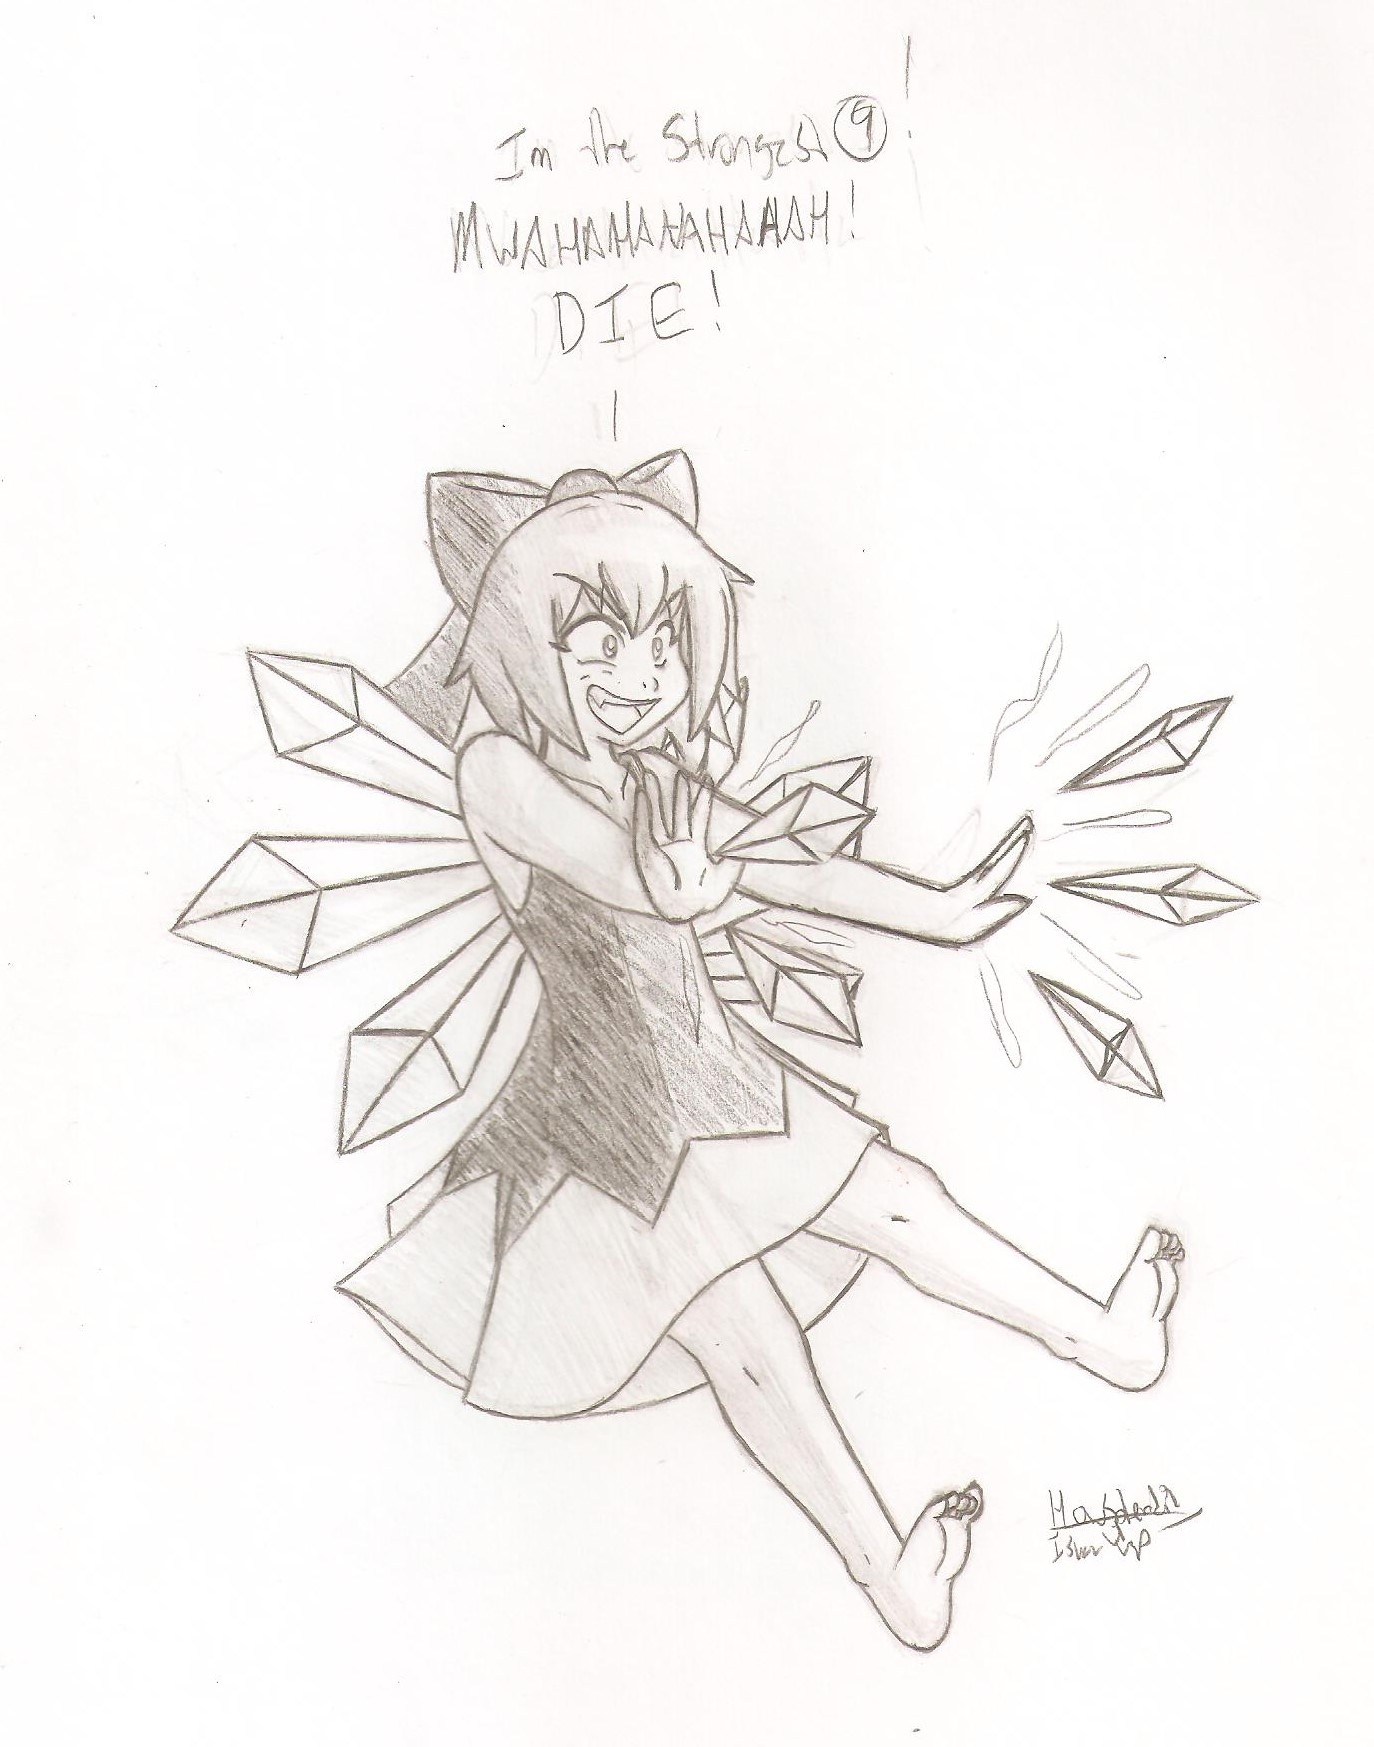 Cirno the strongest